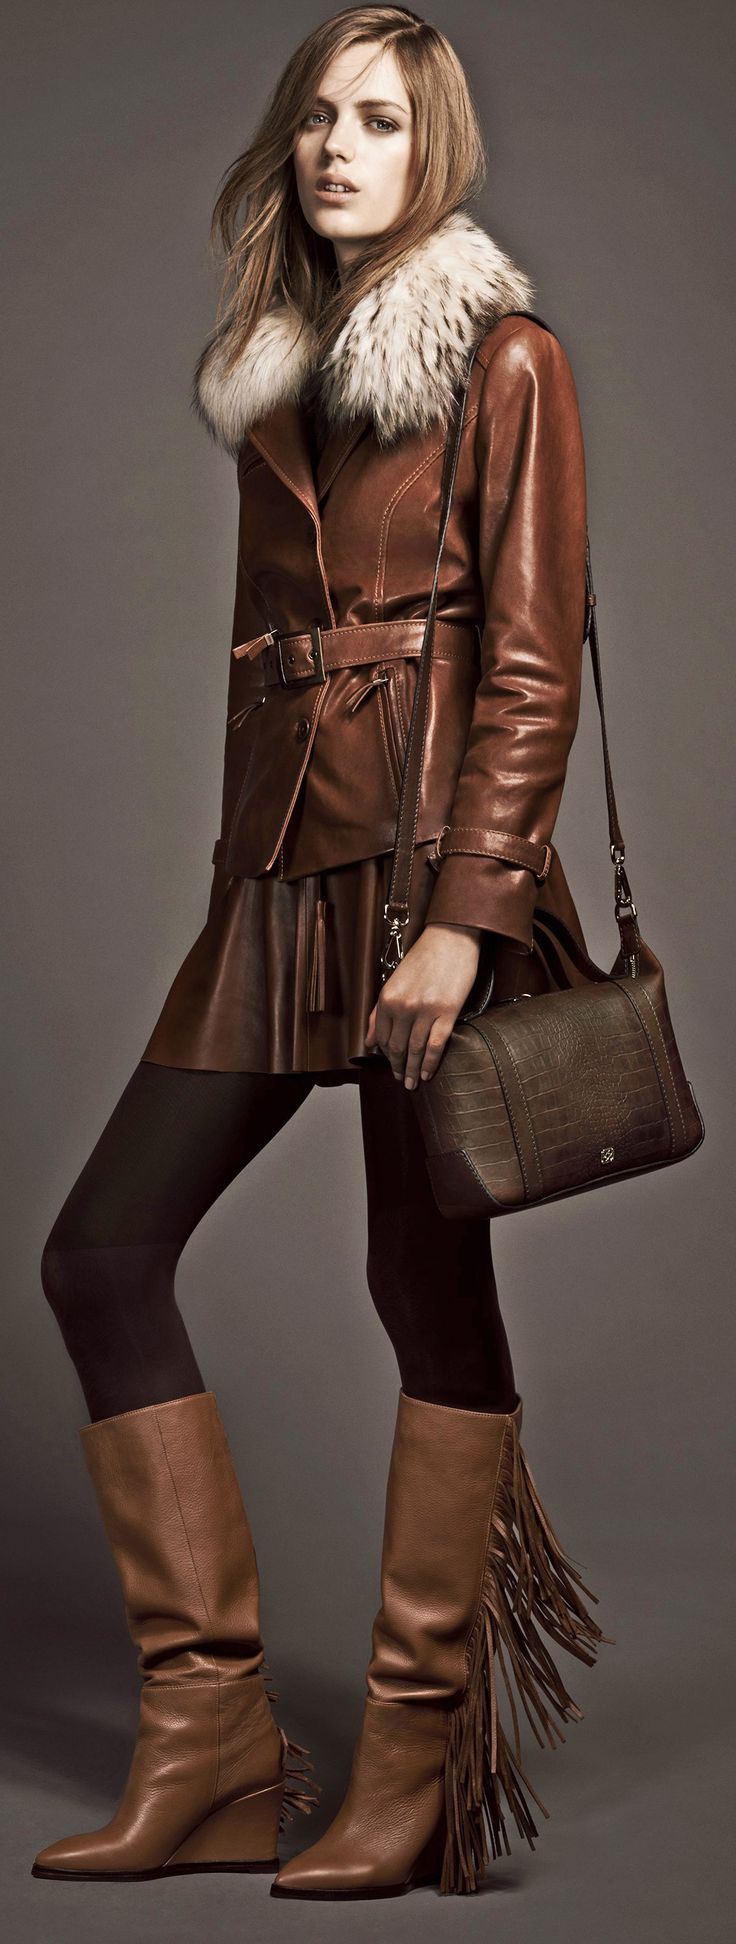 Cute boots & handbag & leather outfit for fall winter 2014 2015 - Desa UK - http://www.boomerinas.com/2013/02/02/best-crossbody-bags-for-travel-women-over-40-50-60/ - http://www.boomerinas.com/2013/02/02/best-crossbody-bags-for-travel-women-over-40-50-60/